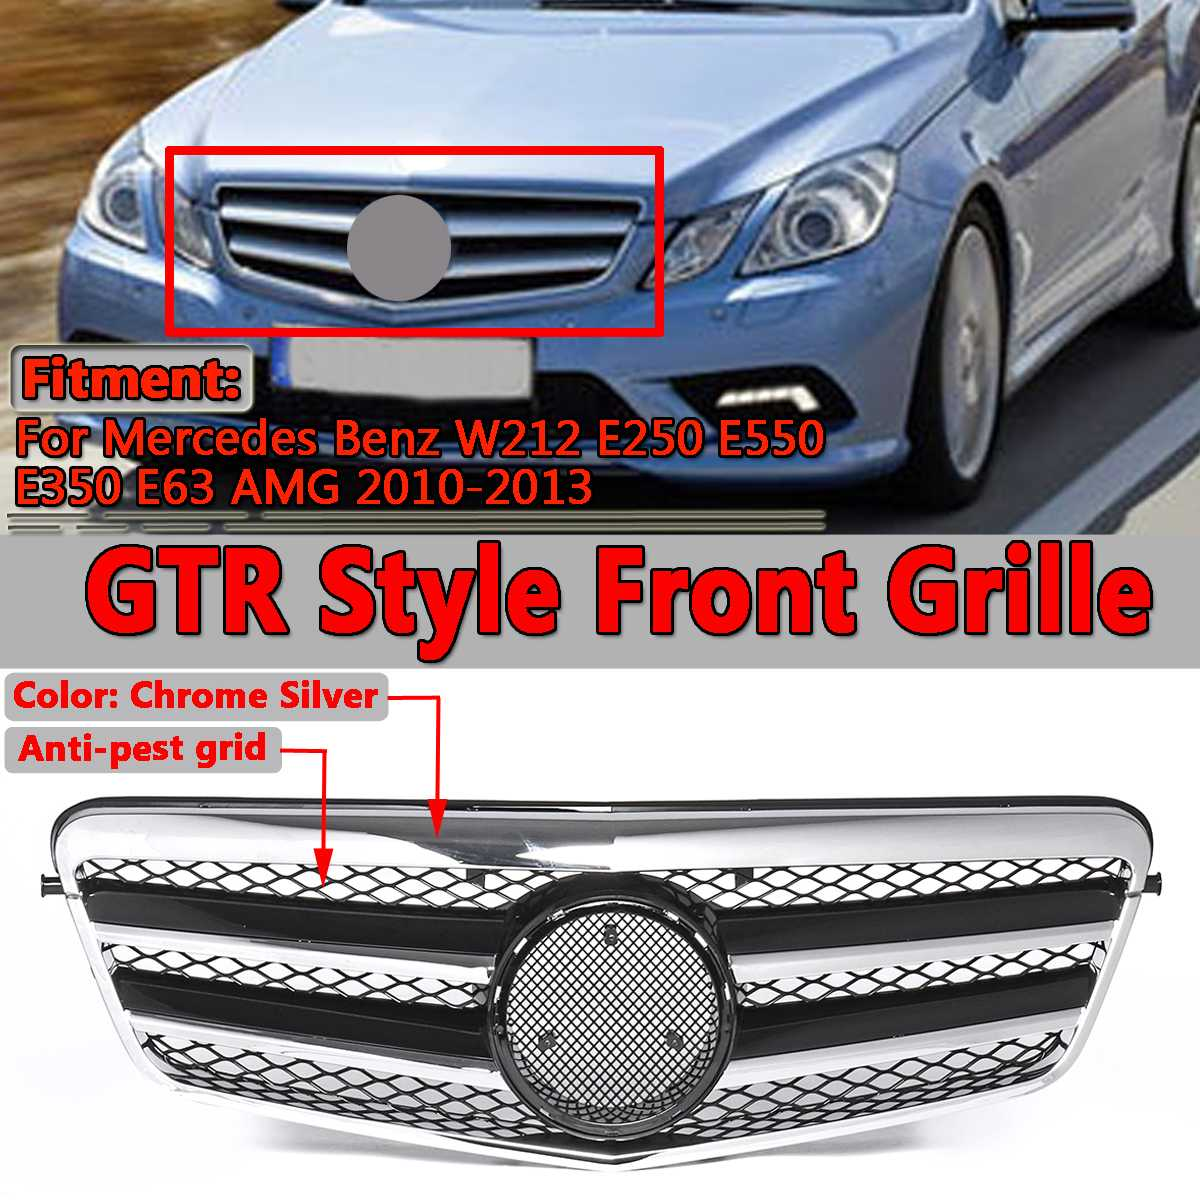 1x New For AMG Style Car Front Bumper Grill Grille For Mercedes For Benz W212 E250 E550 E350 E63 For AMG 2010 2013 Racing Grills